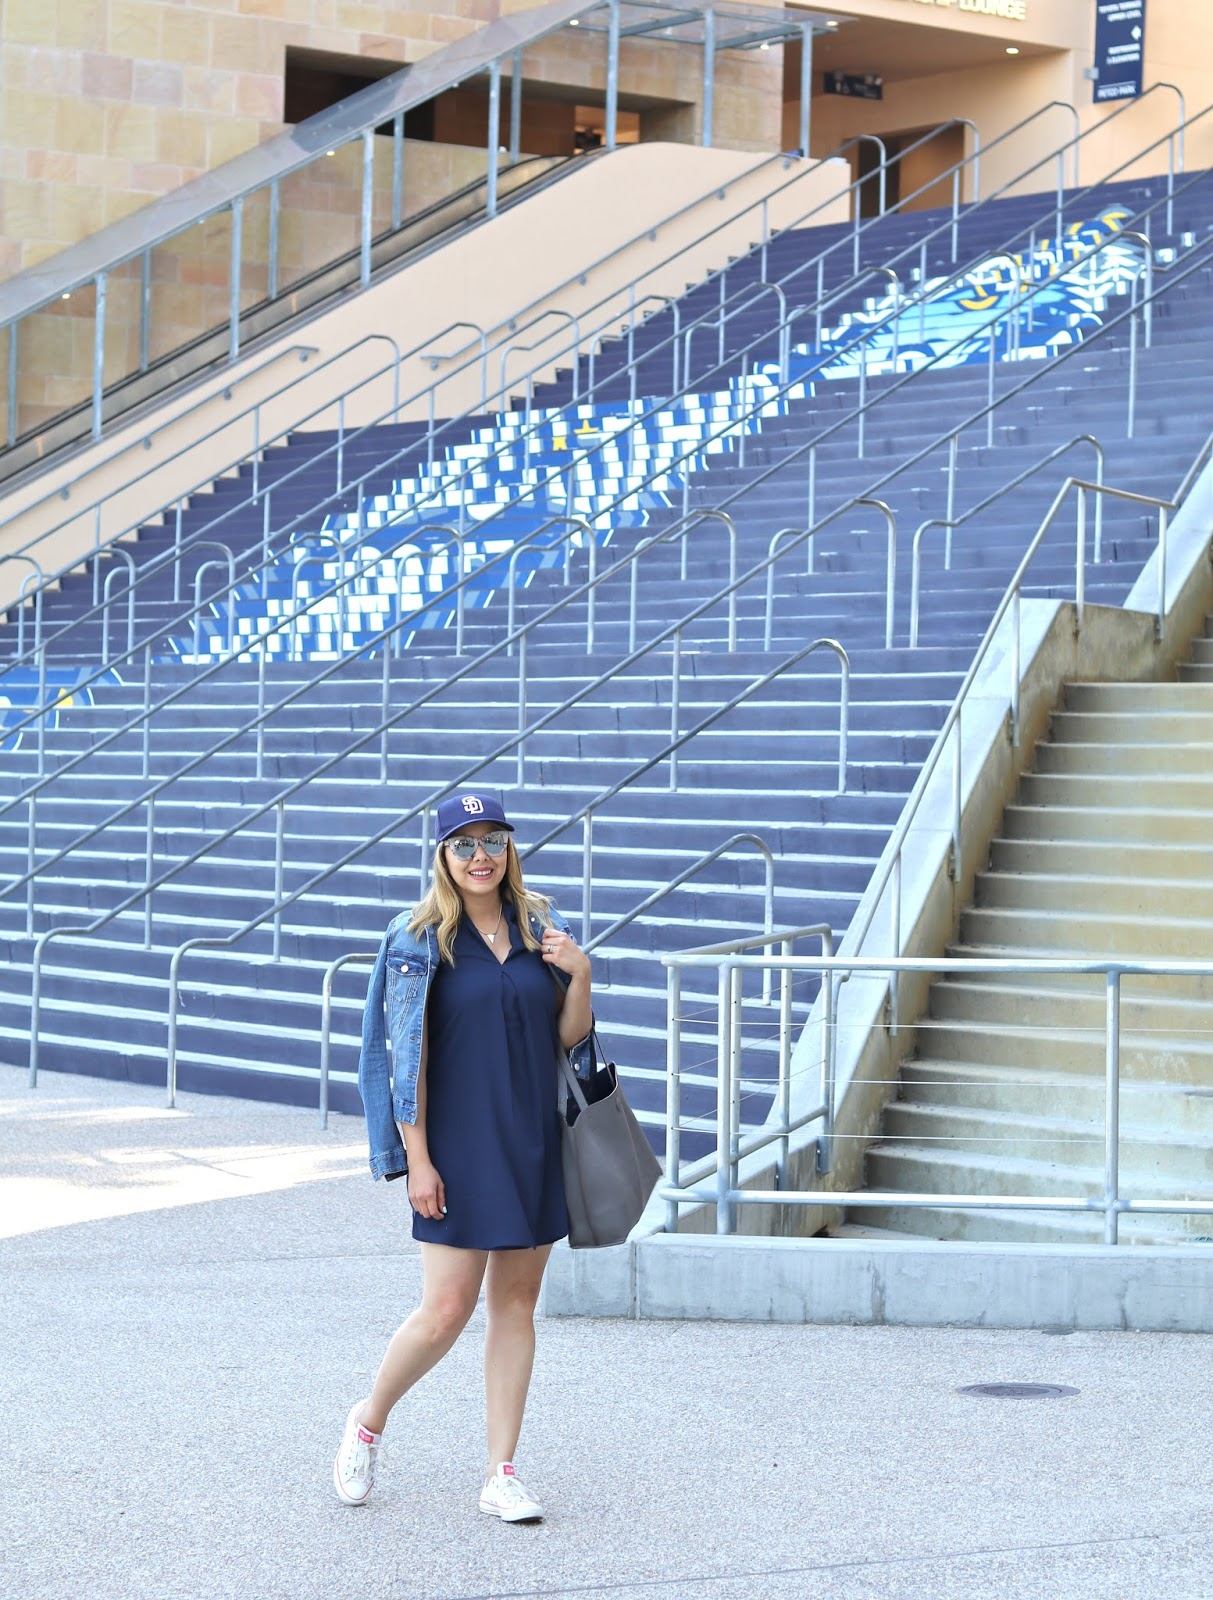 baseball ootd, baseball game attire, casual look, what to wear to a bbq